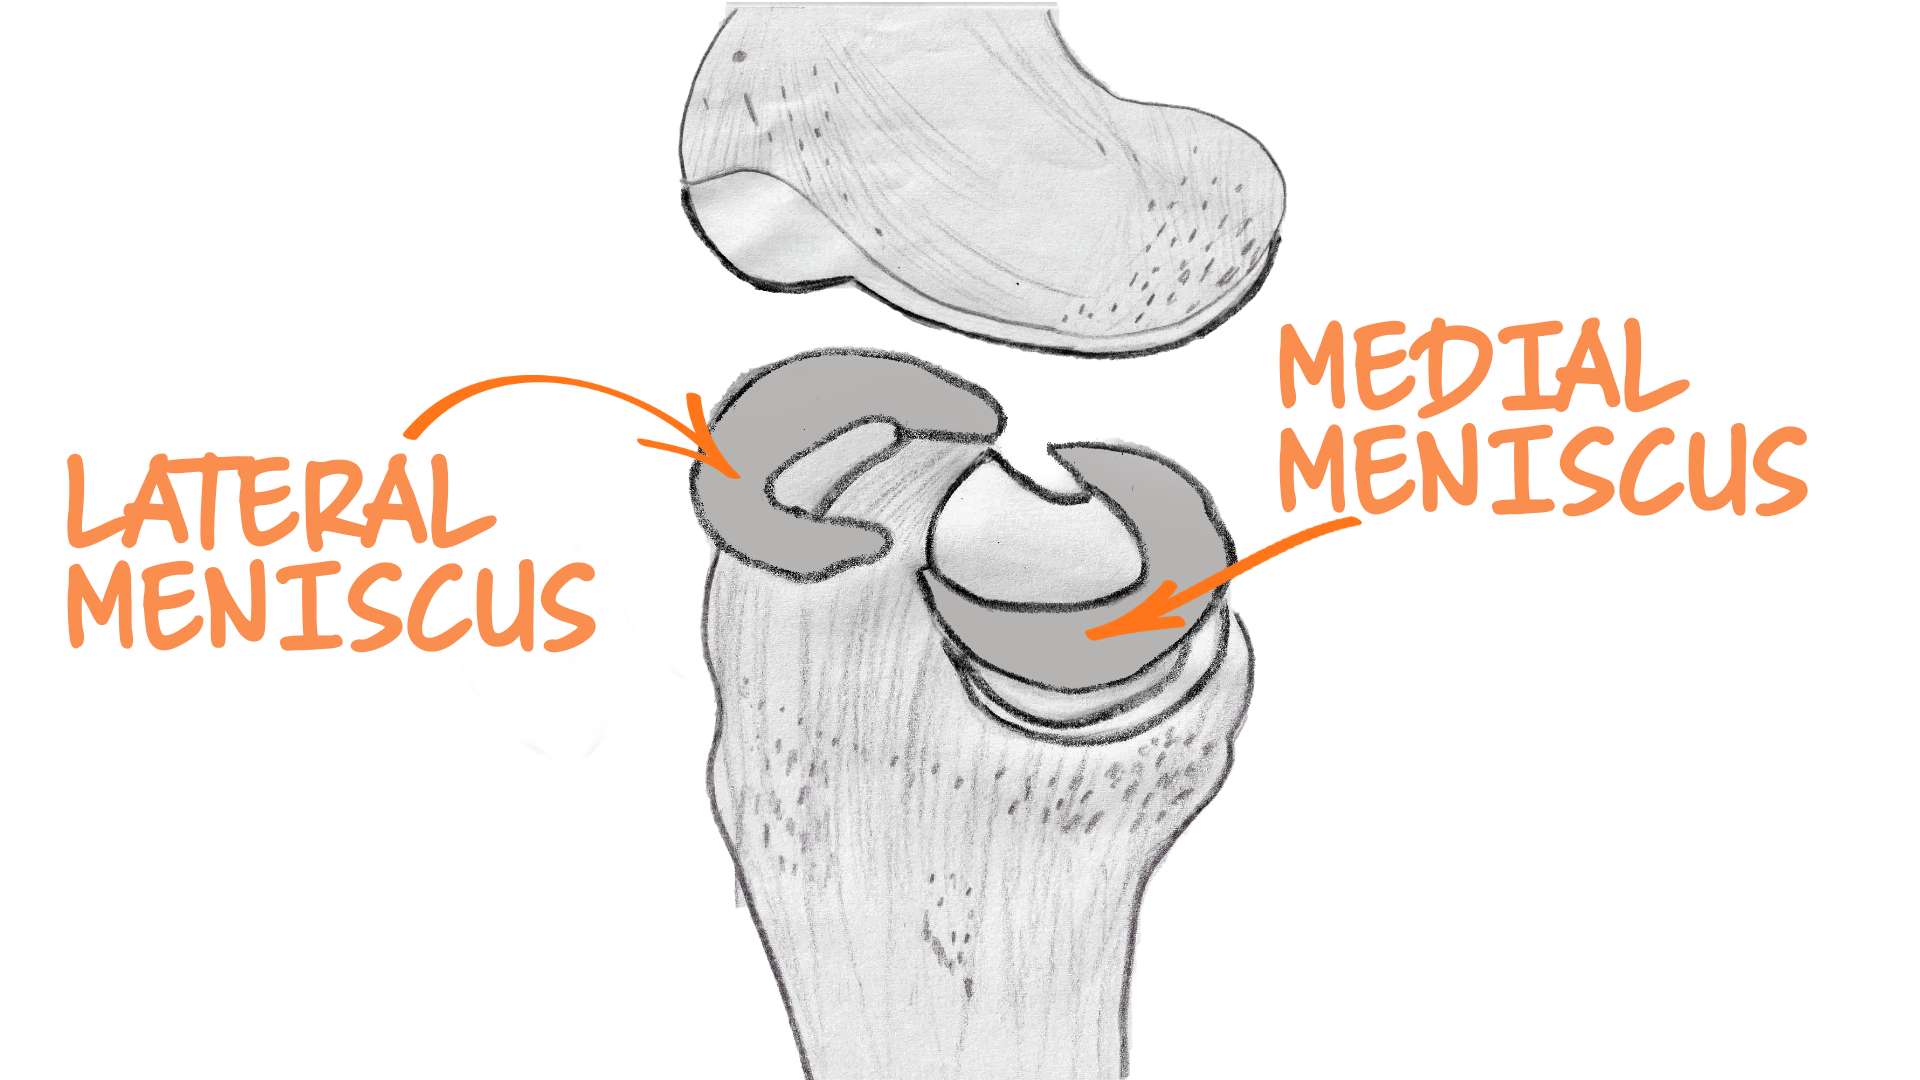 A medical illustration of lateral meniscus, medial meniscus, and cartilage